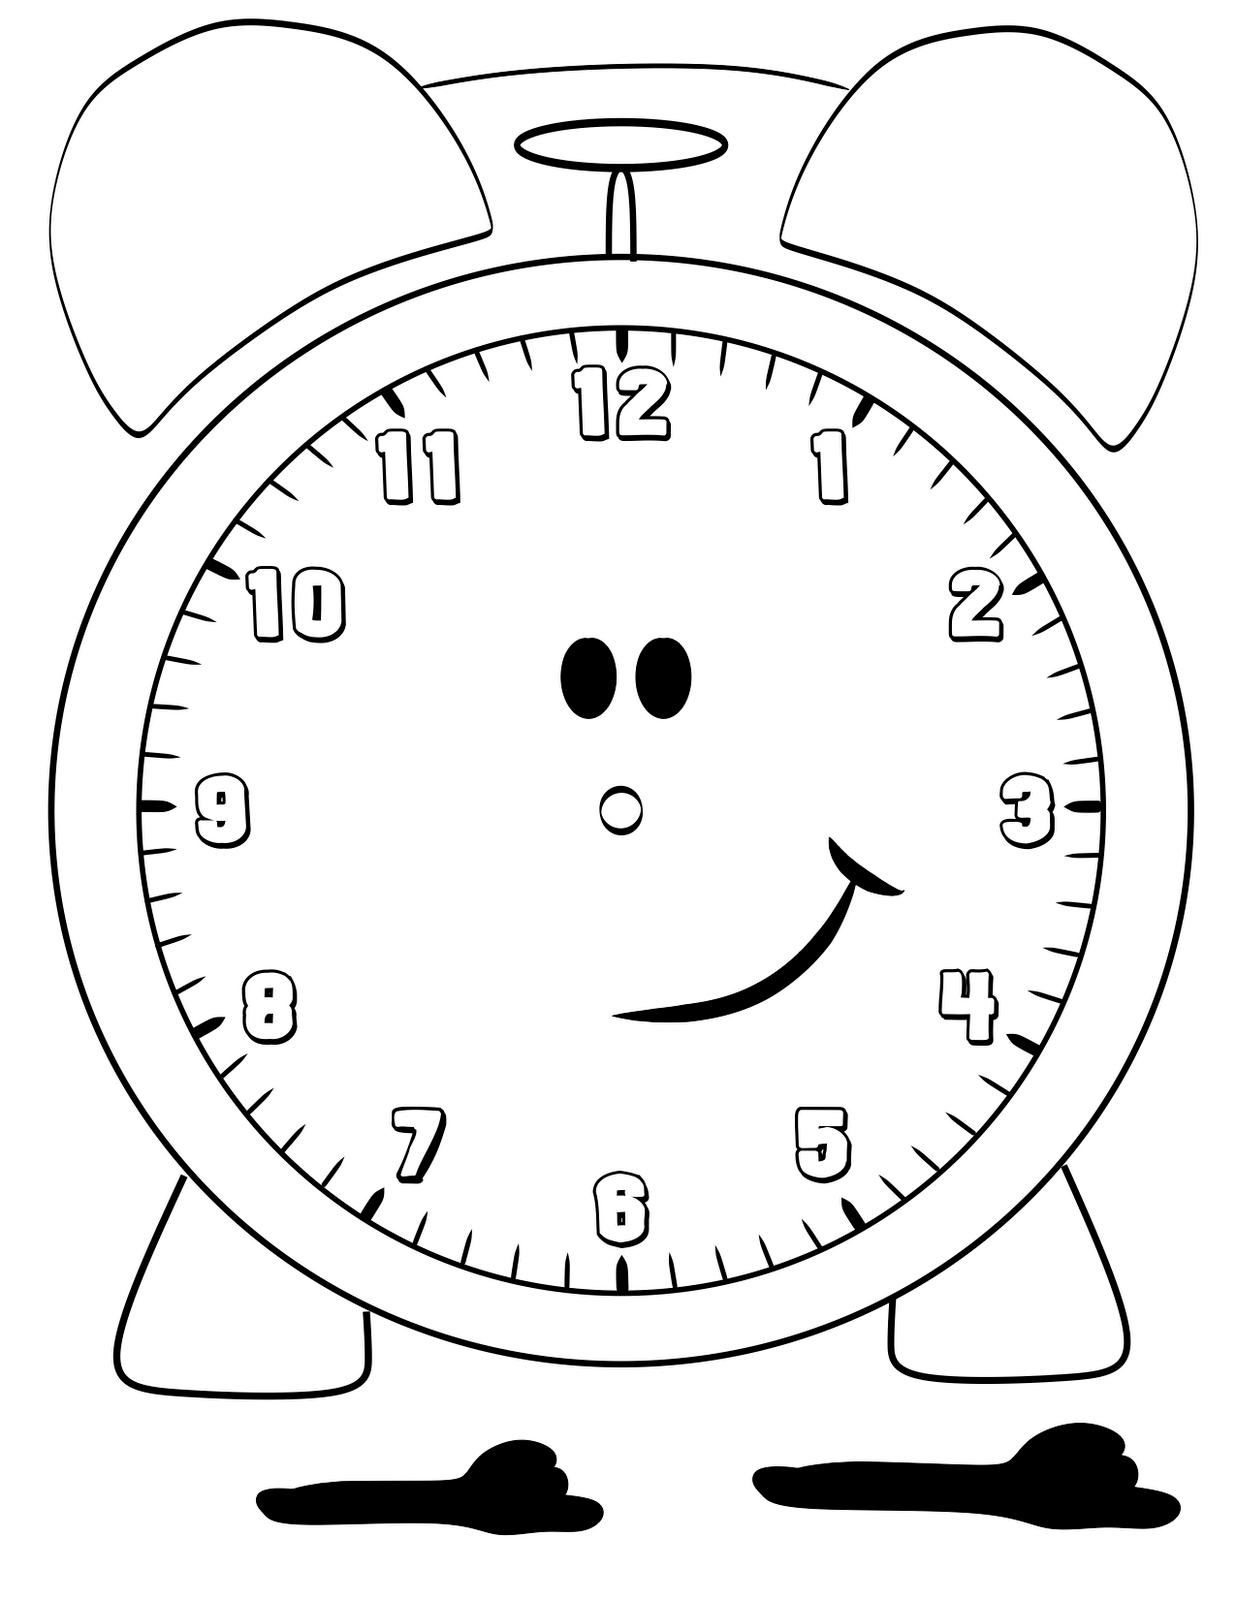 free printable clock coloring pages for kids. Black Bedroom Furniture Sets. Home Design Ideas